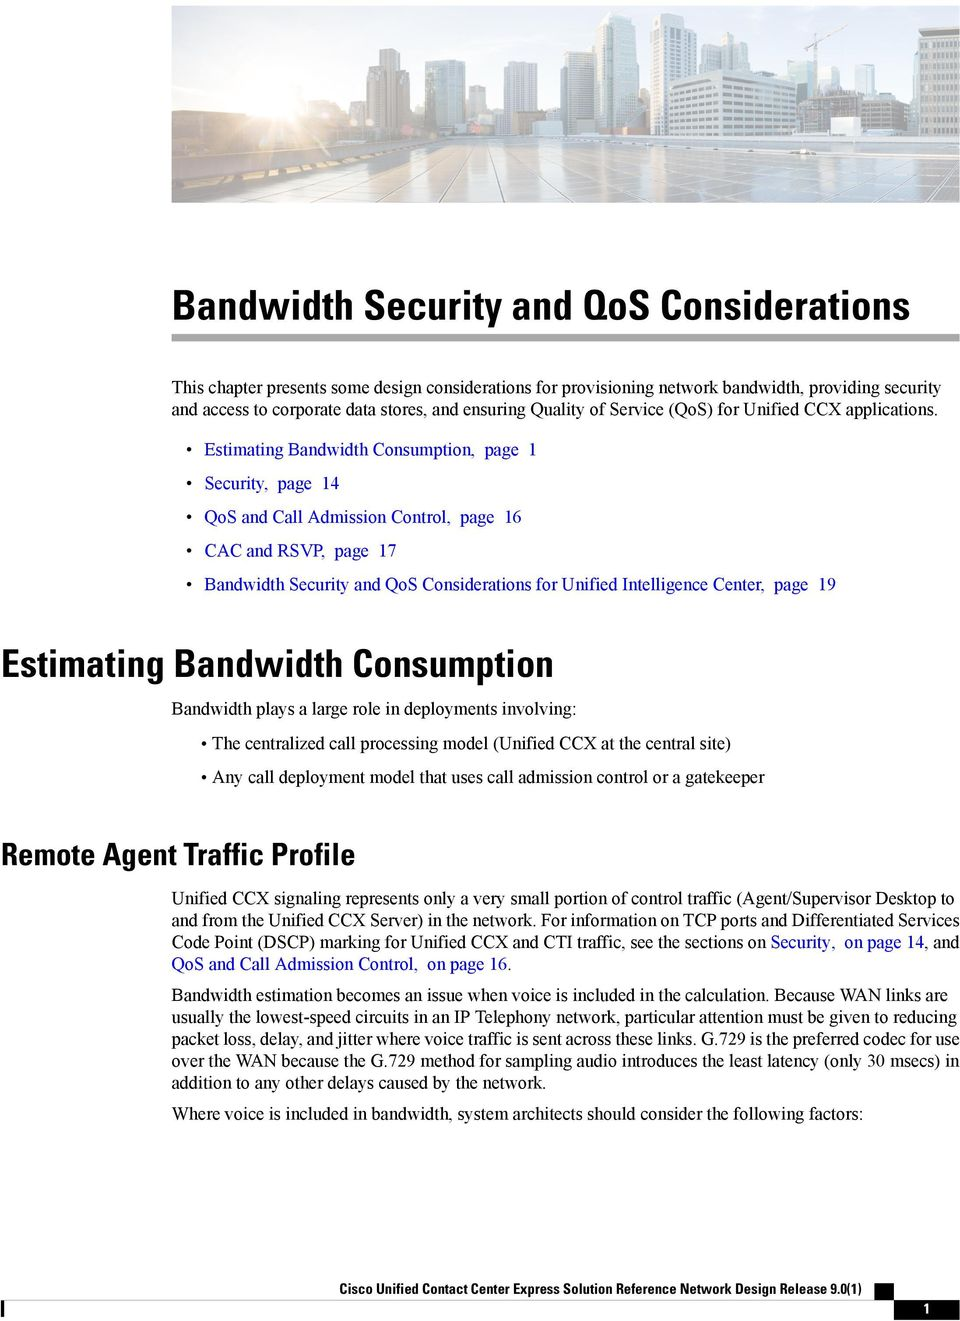 Estimating Bandwidth Consumption, page 1 Security, page 14 QoS and Call Admission Control, page 16 CAC and RSVP, page 17 for Unified Intelligence Center, page 19 Estimating Bandwidth Consumption